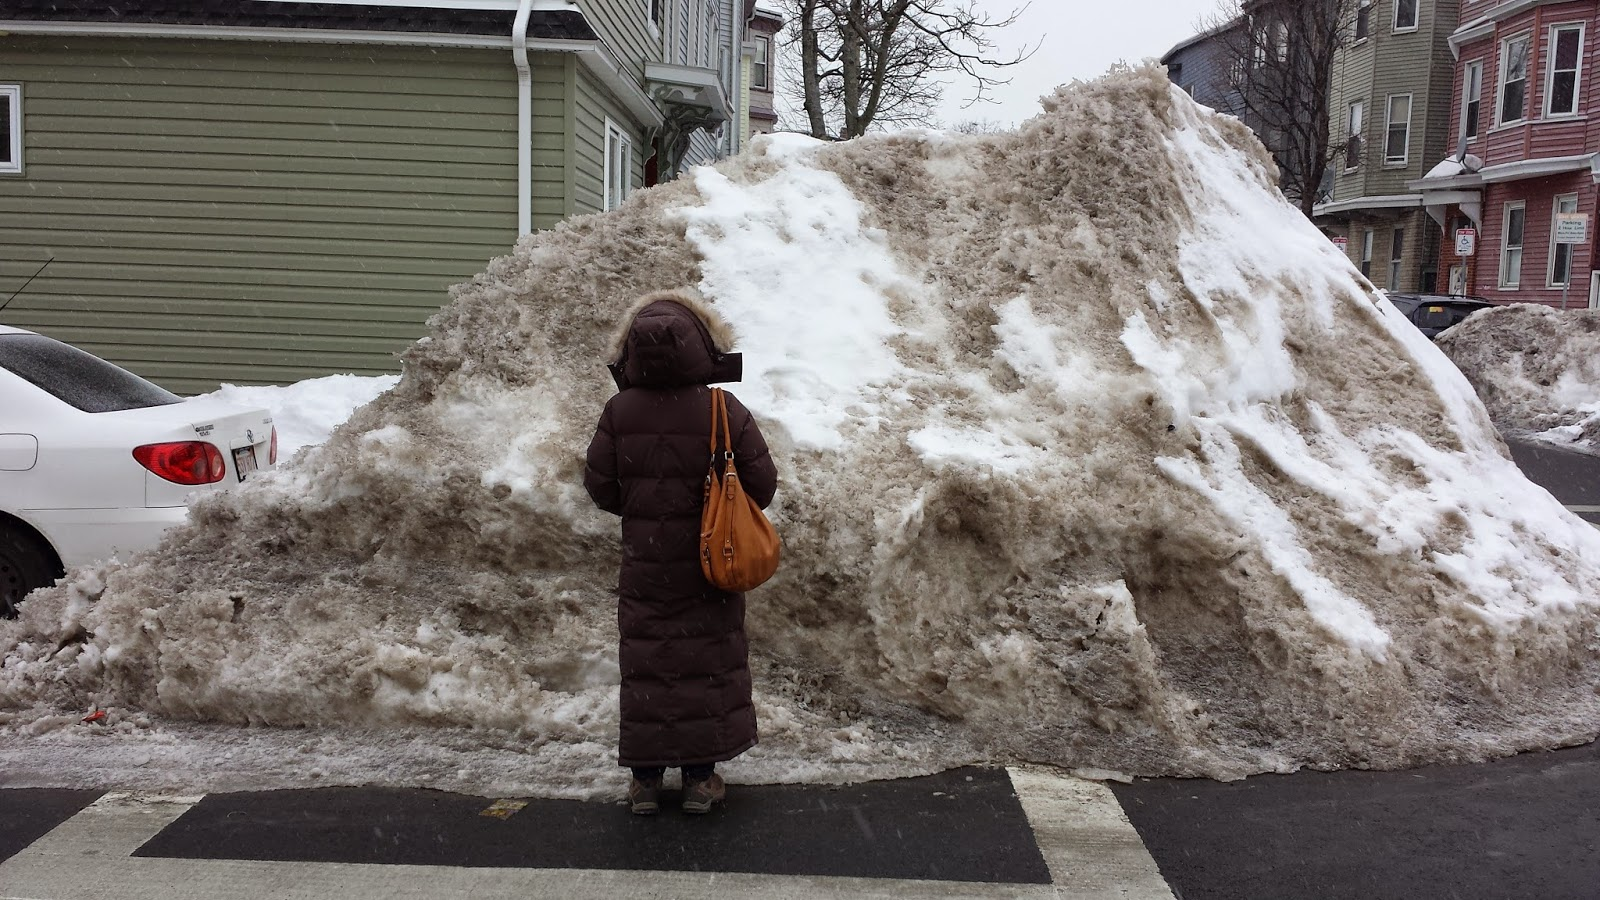 pedestrian standing in front of snow pile